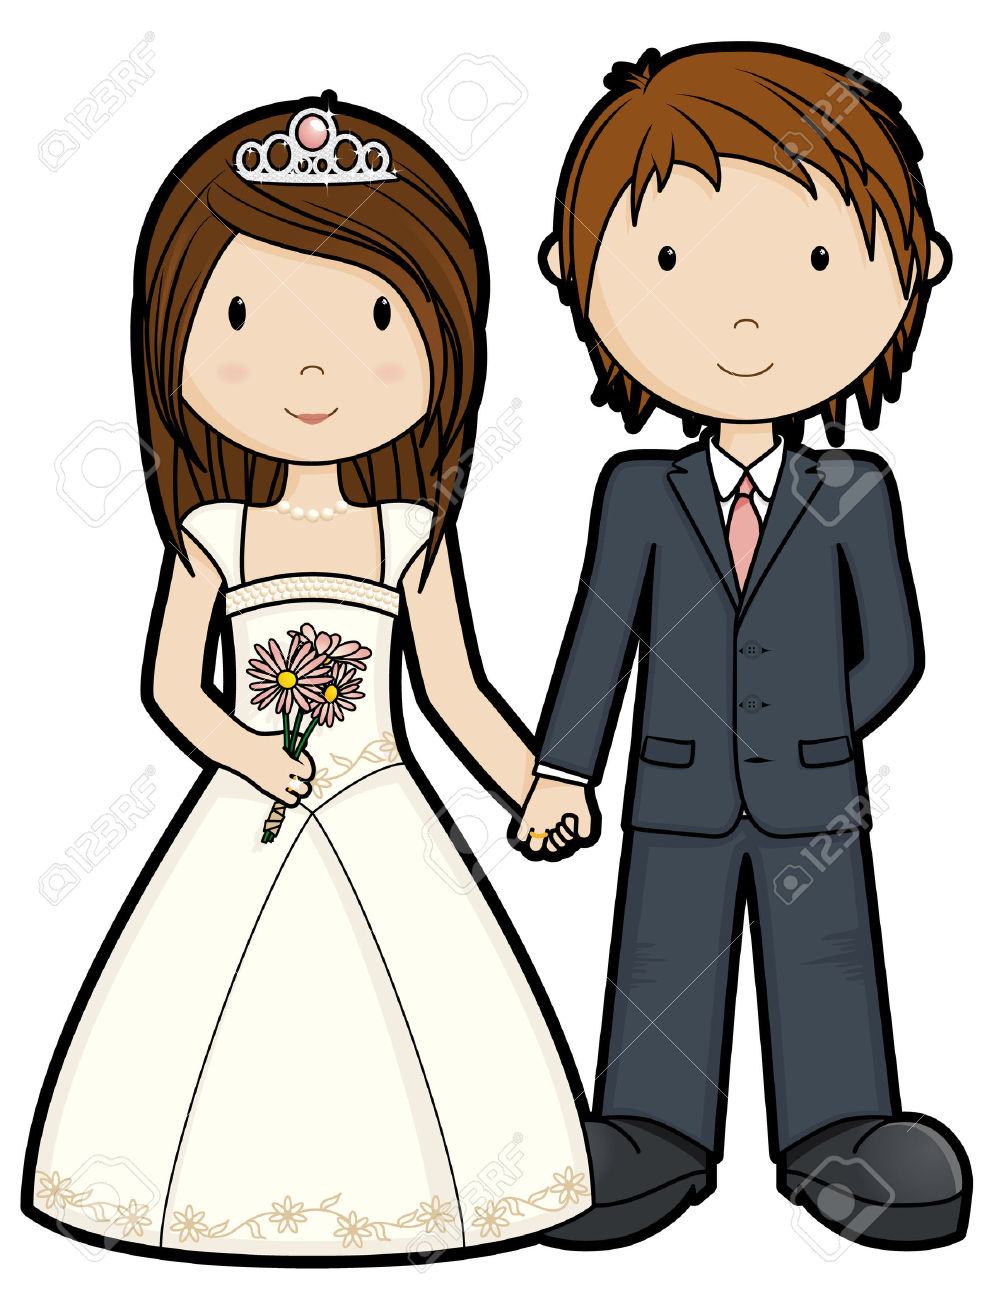 Woman married clipart clip art royalty free Getting Married Cliparts | Free download best Getting ... clip art royalty free